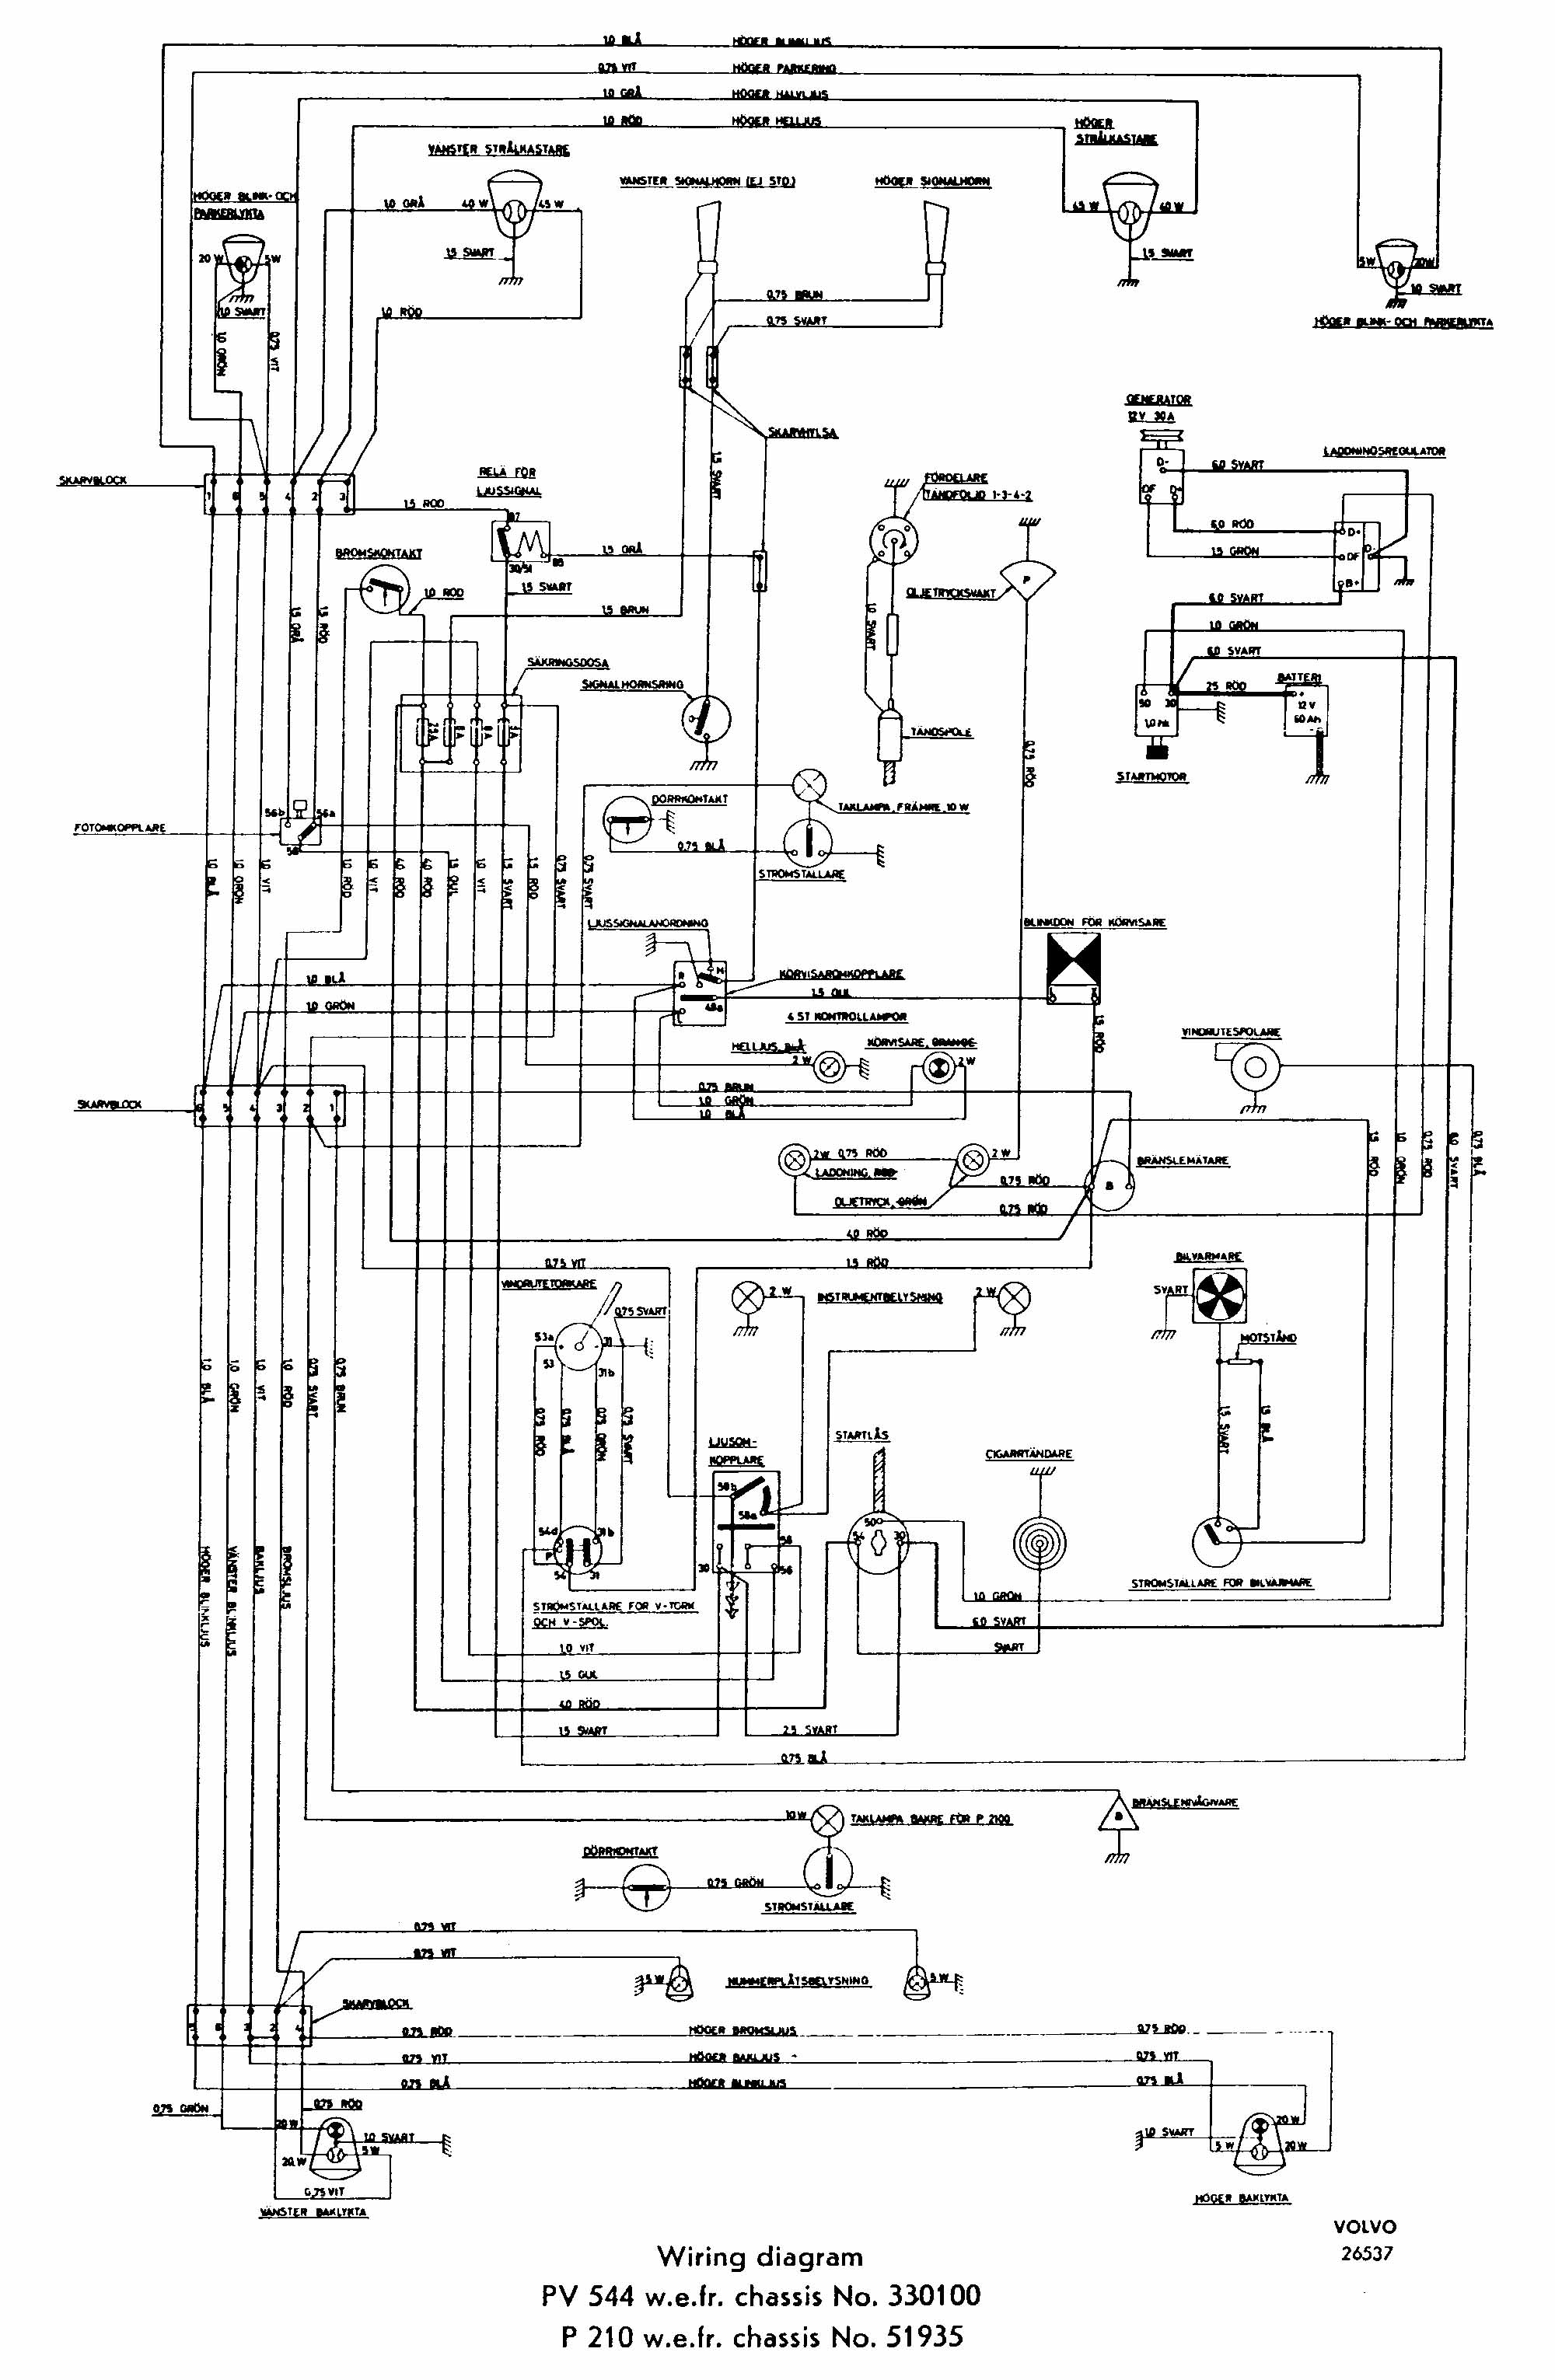 Sw Em Fuses Allocation And Troubleshooting It Works My Circuit Schematic Maker For Forums Electronics Forum Link To Wiring Diagram